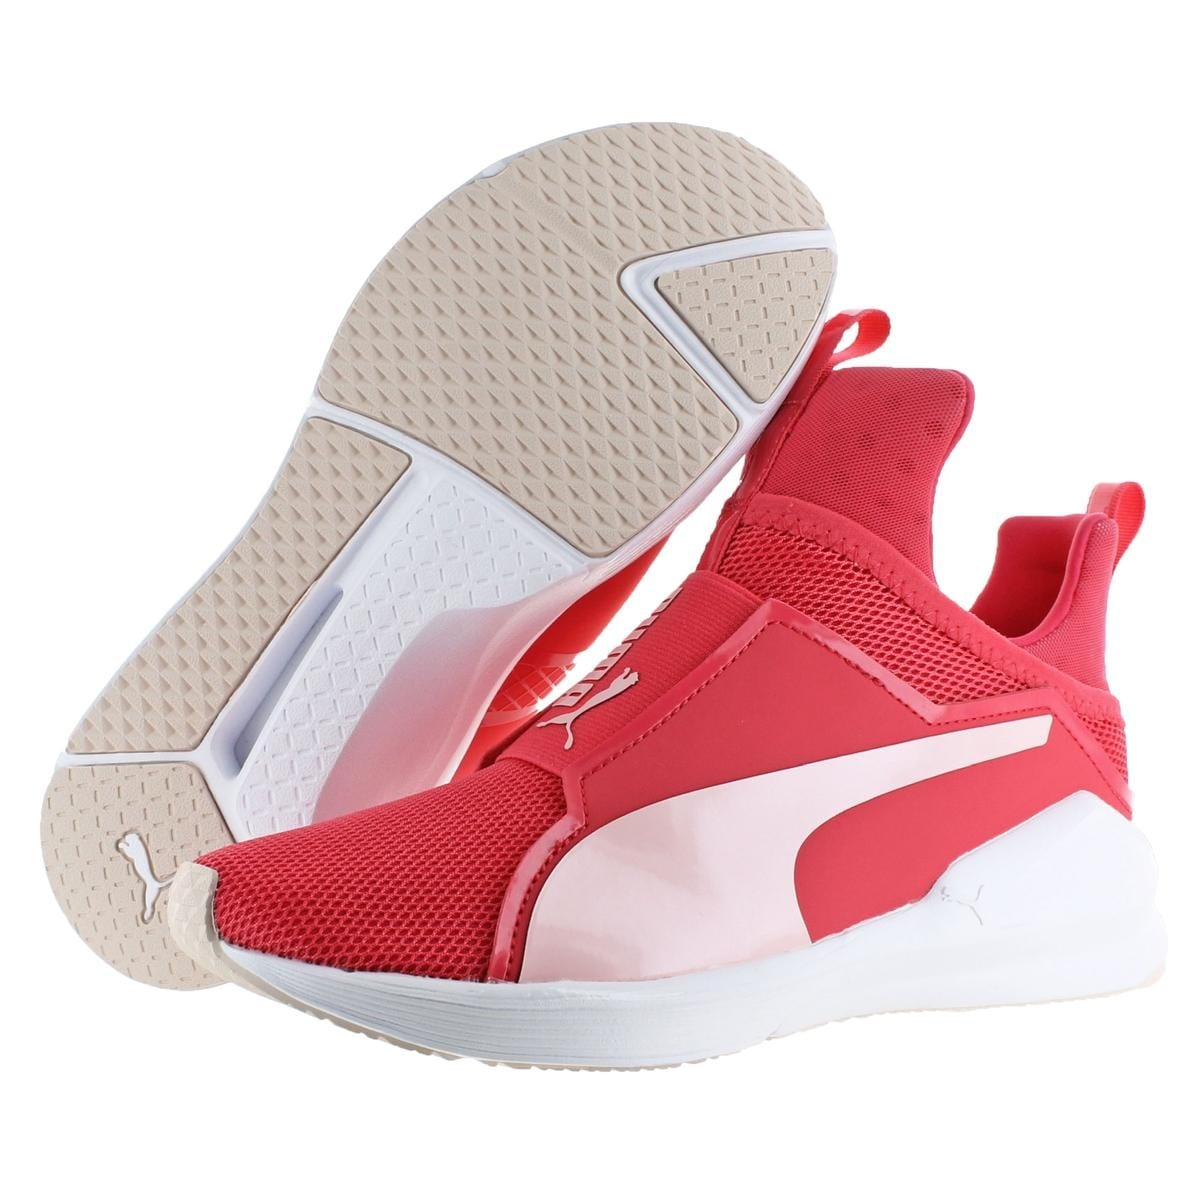 db779184a6798f Shop Puma Womens Fierce Core Fashion Sneakers Lightweight Training - Free  Shipping On Orders Over  45 - Overstock - 21430945